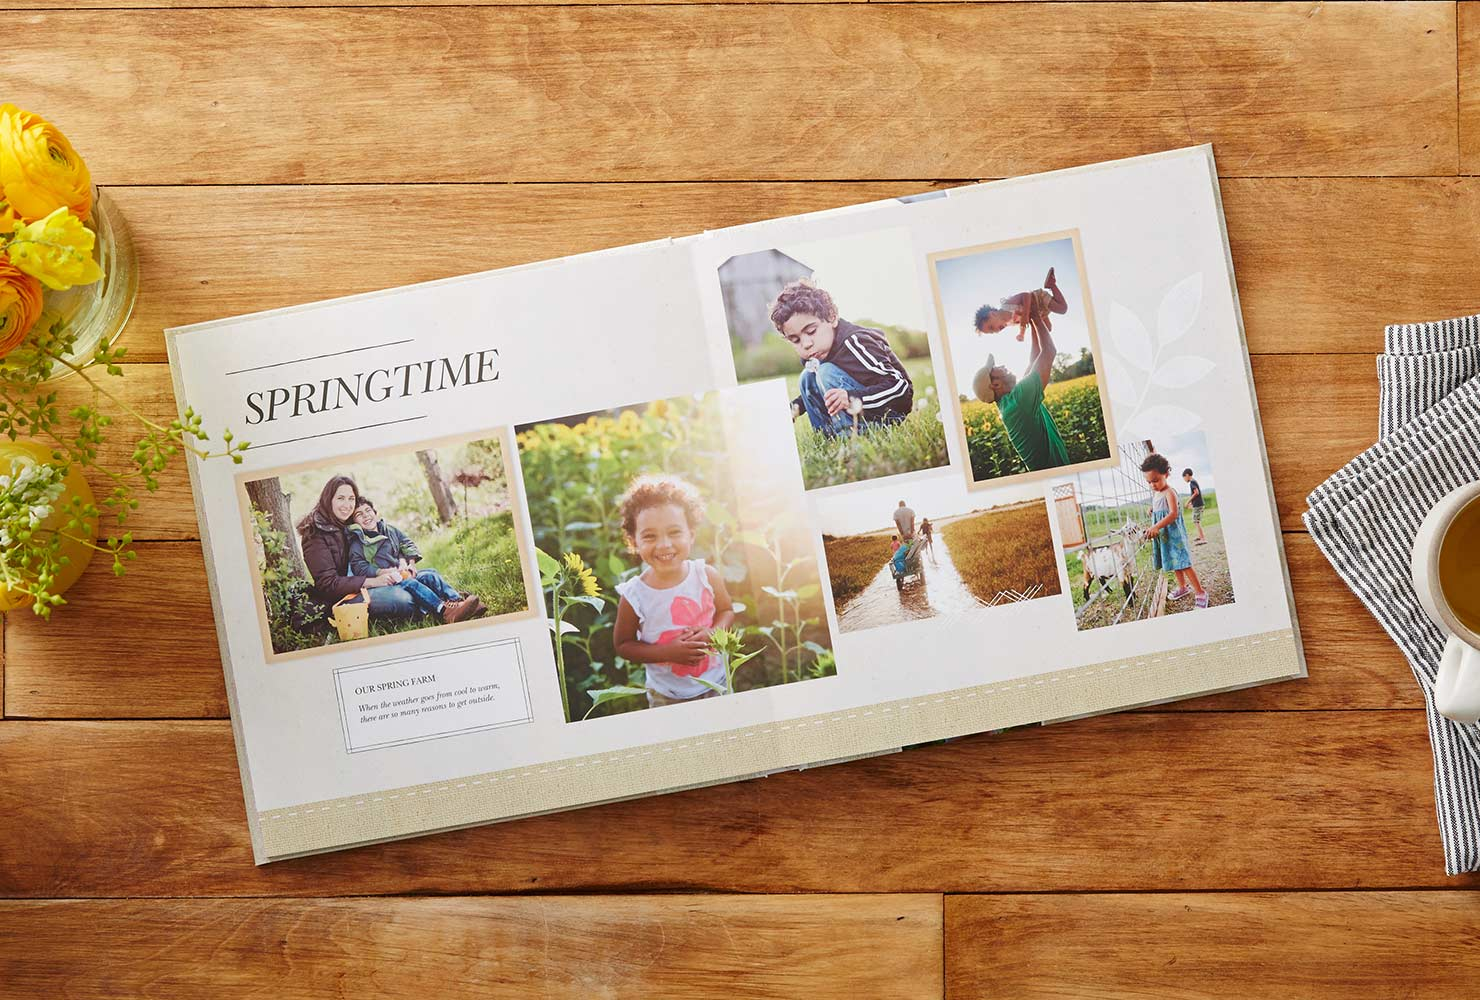 Preserving Memories Through Photobooks